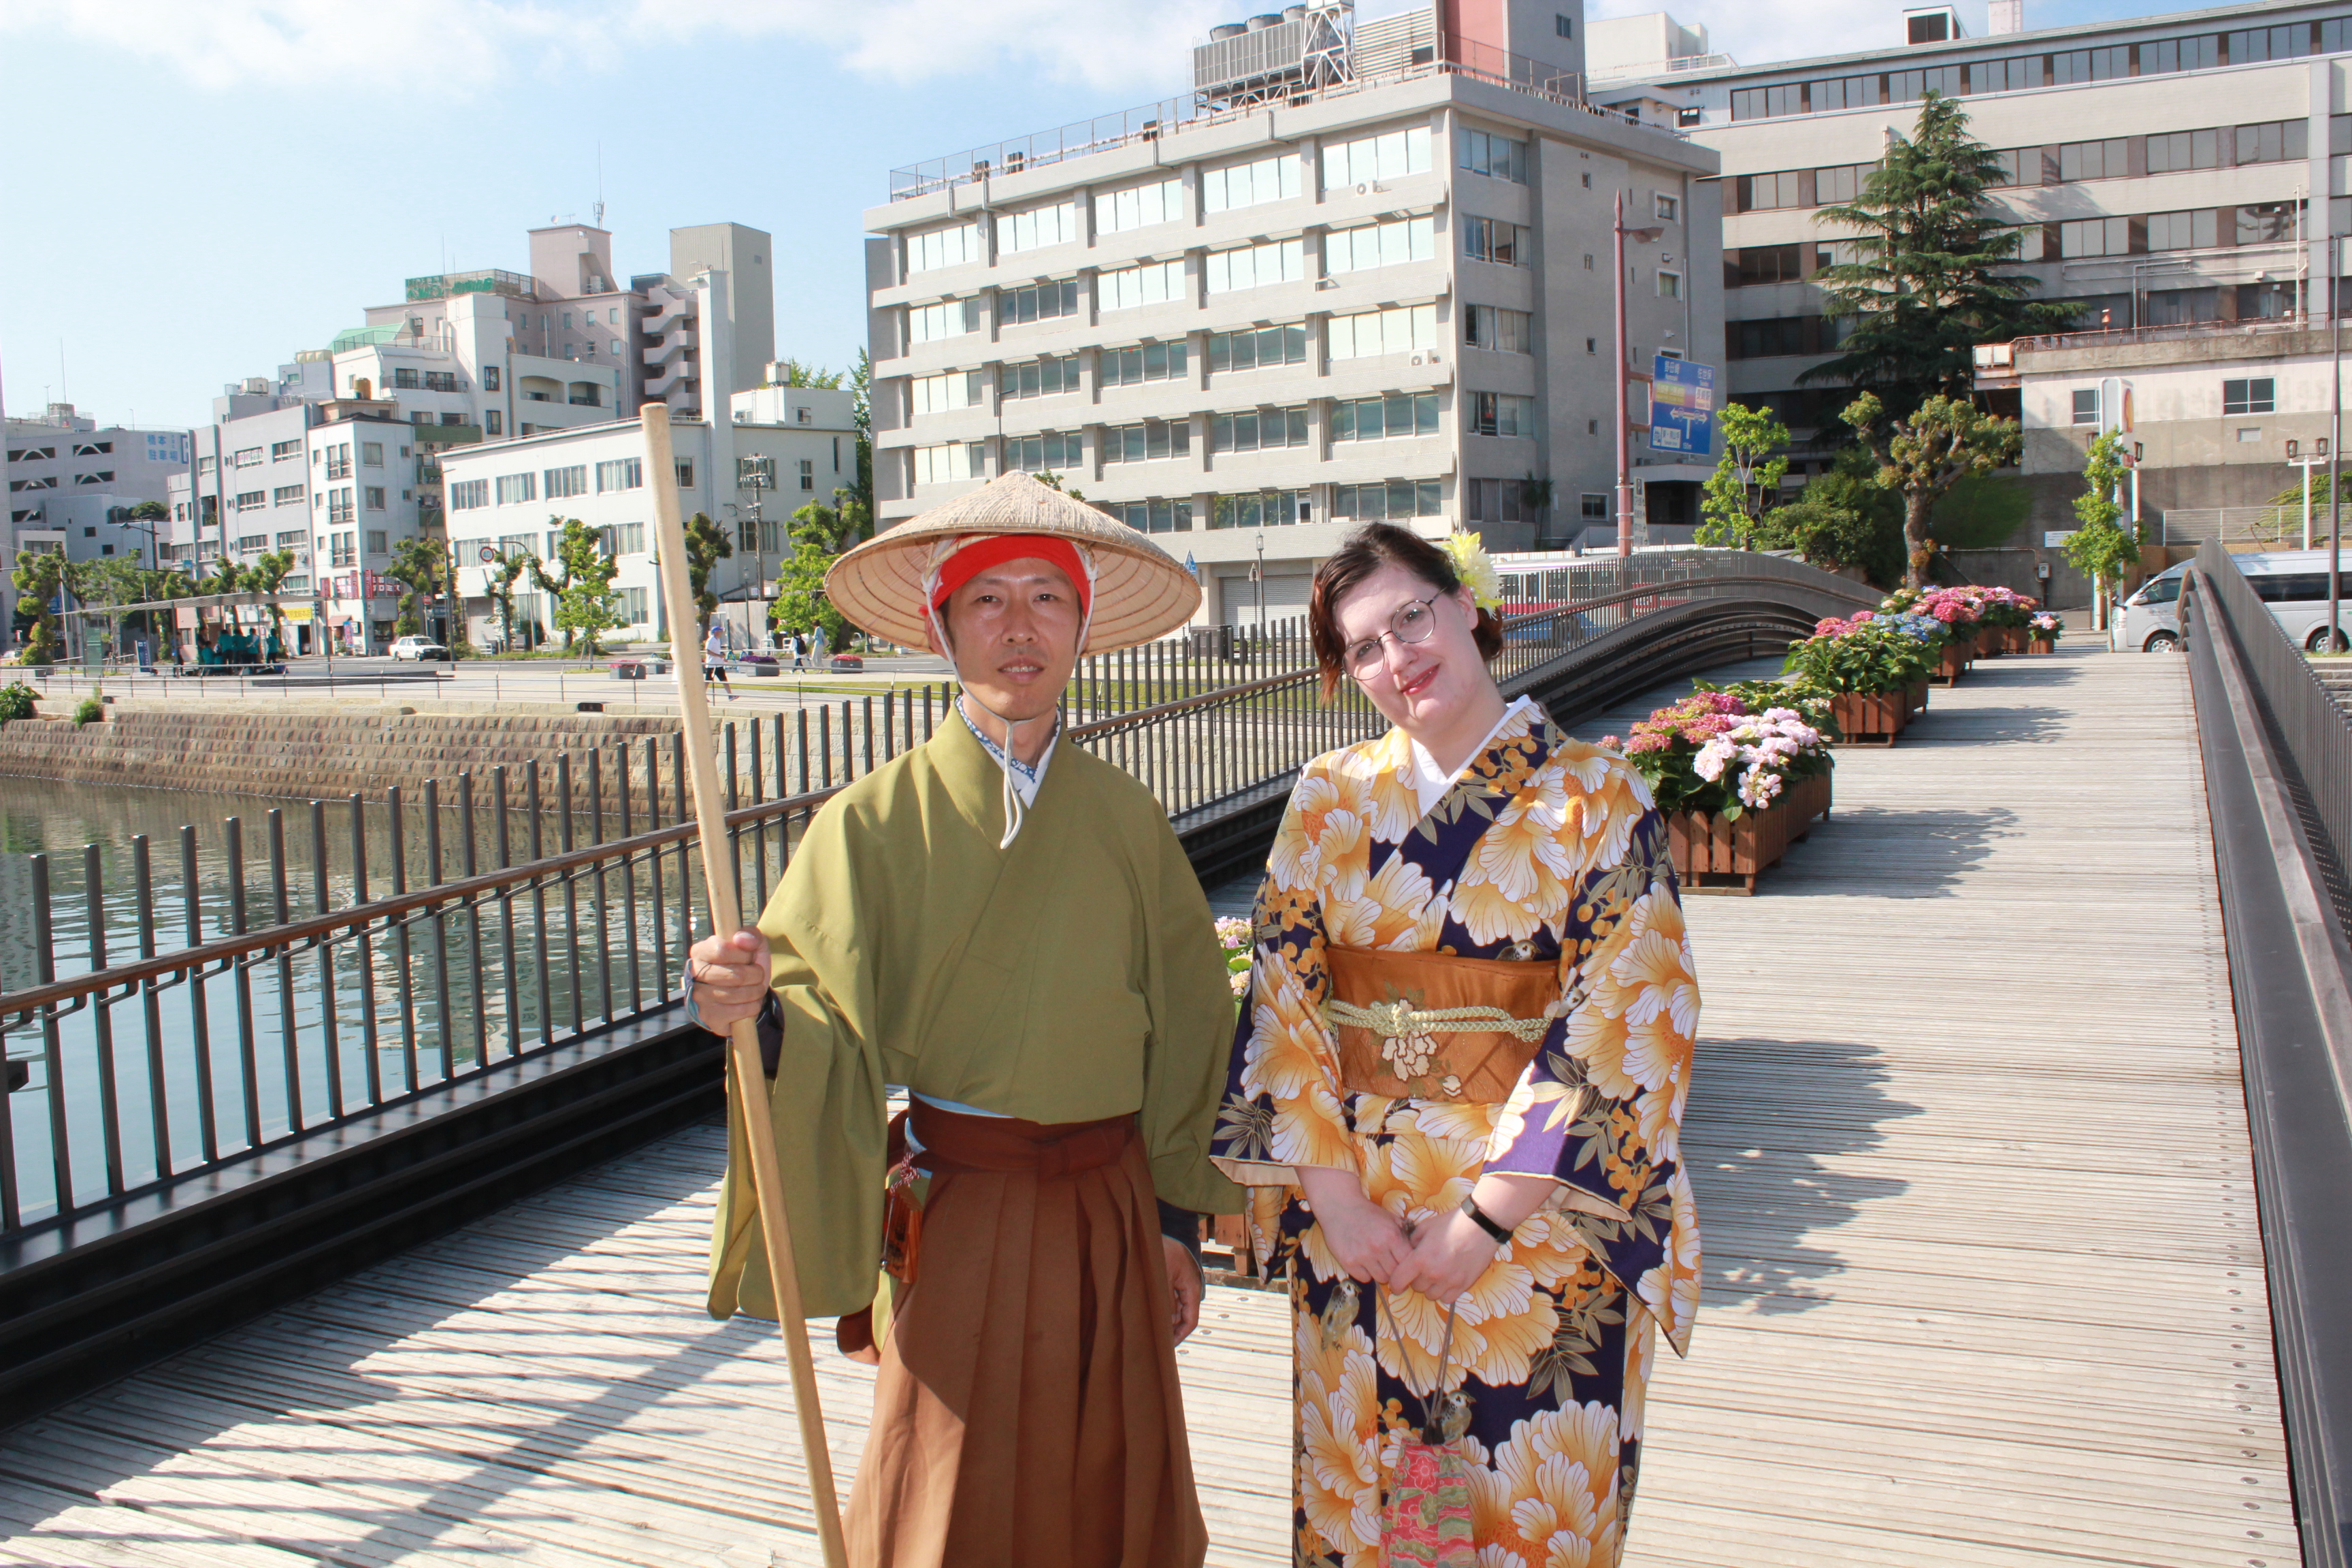 Two people posing for the photo in the Japanese traditional outfits